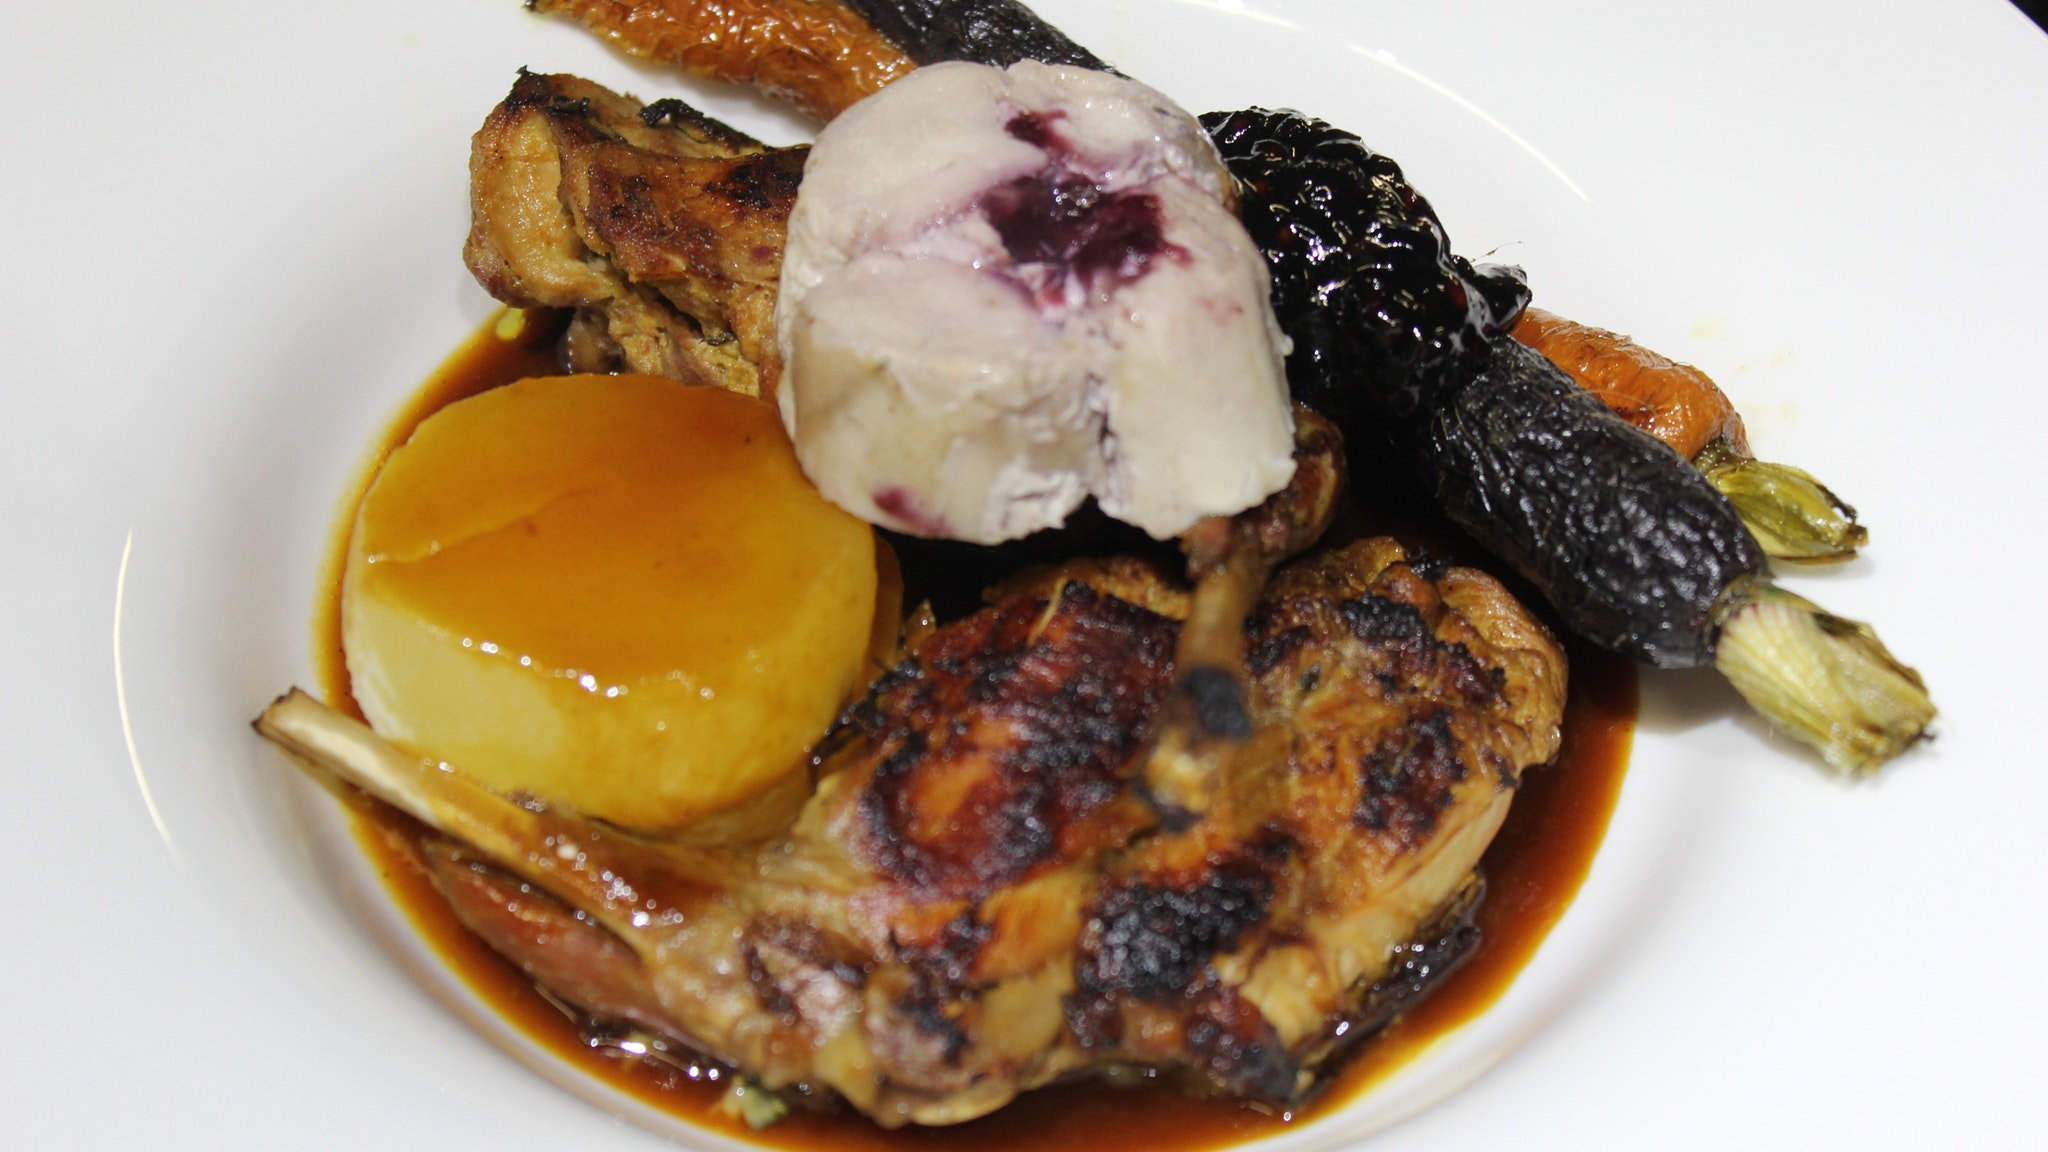 Braised Rabbit and Roasted Garden Vegetables